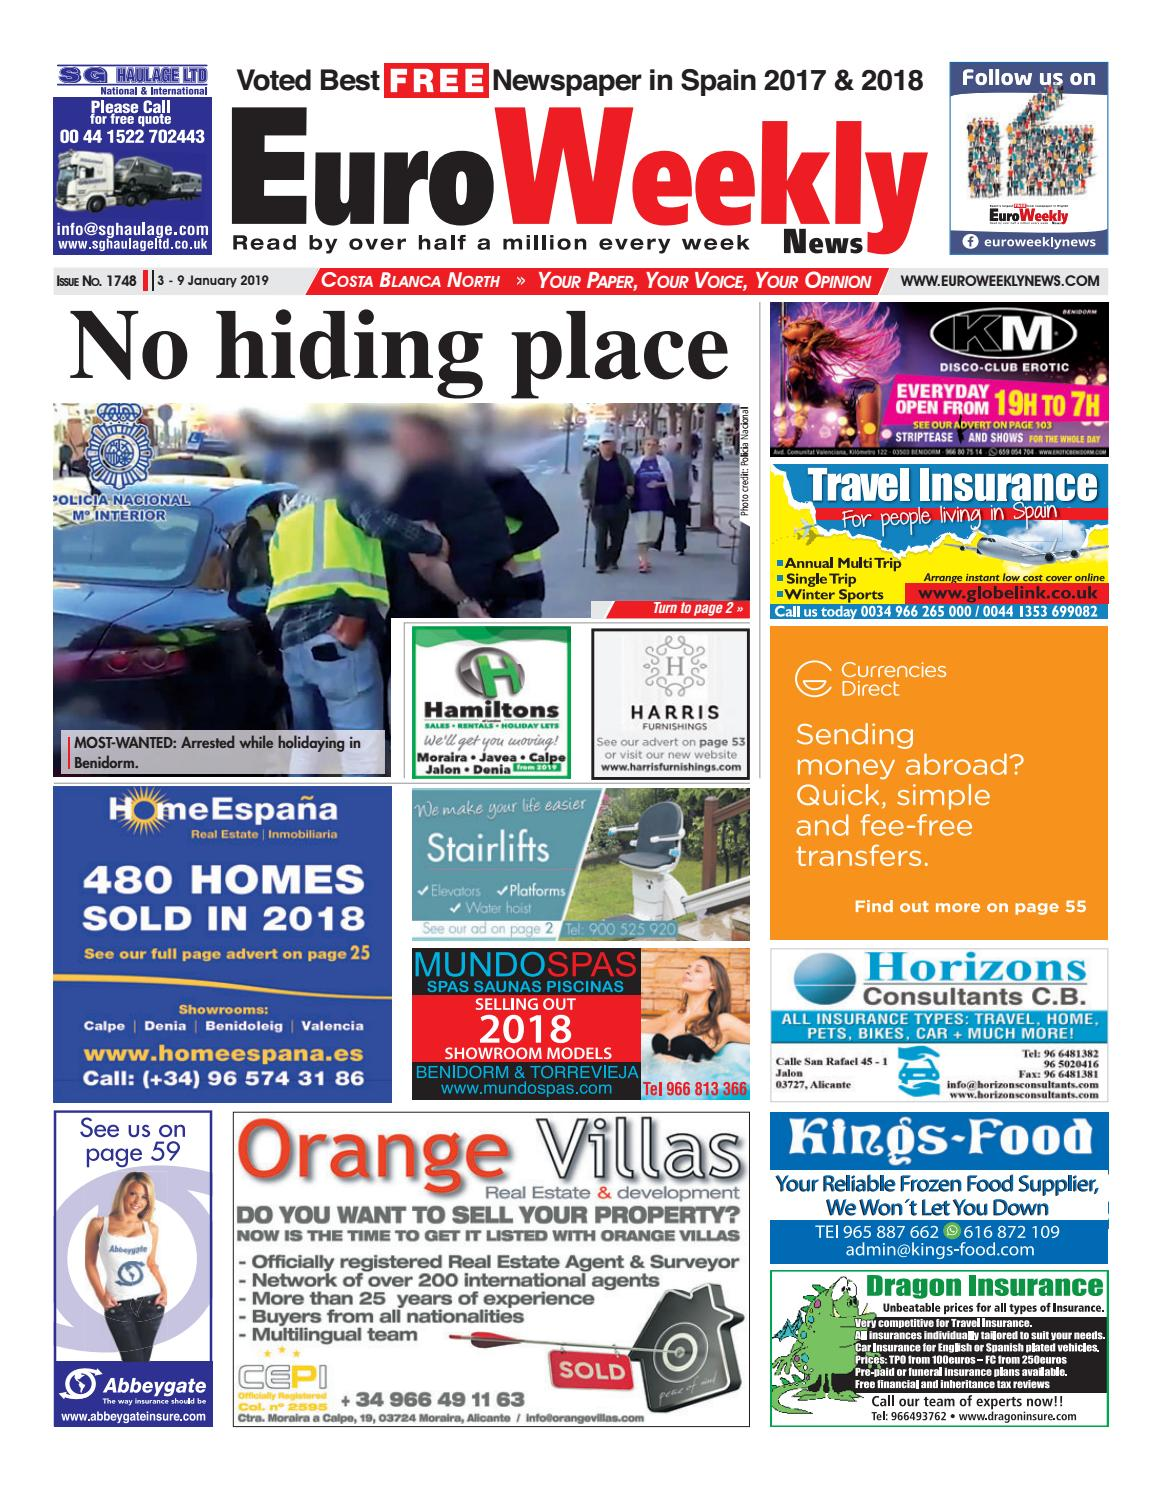 e089ba194c3 Euro Weekly News - Costa Blanca North 3 - 9 January 2019 Issue 1748 ...